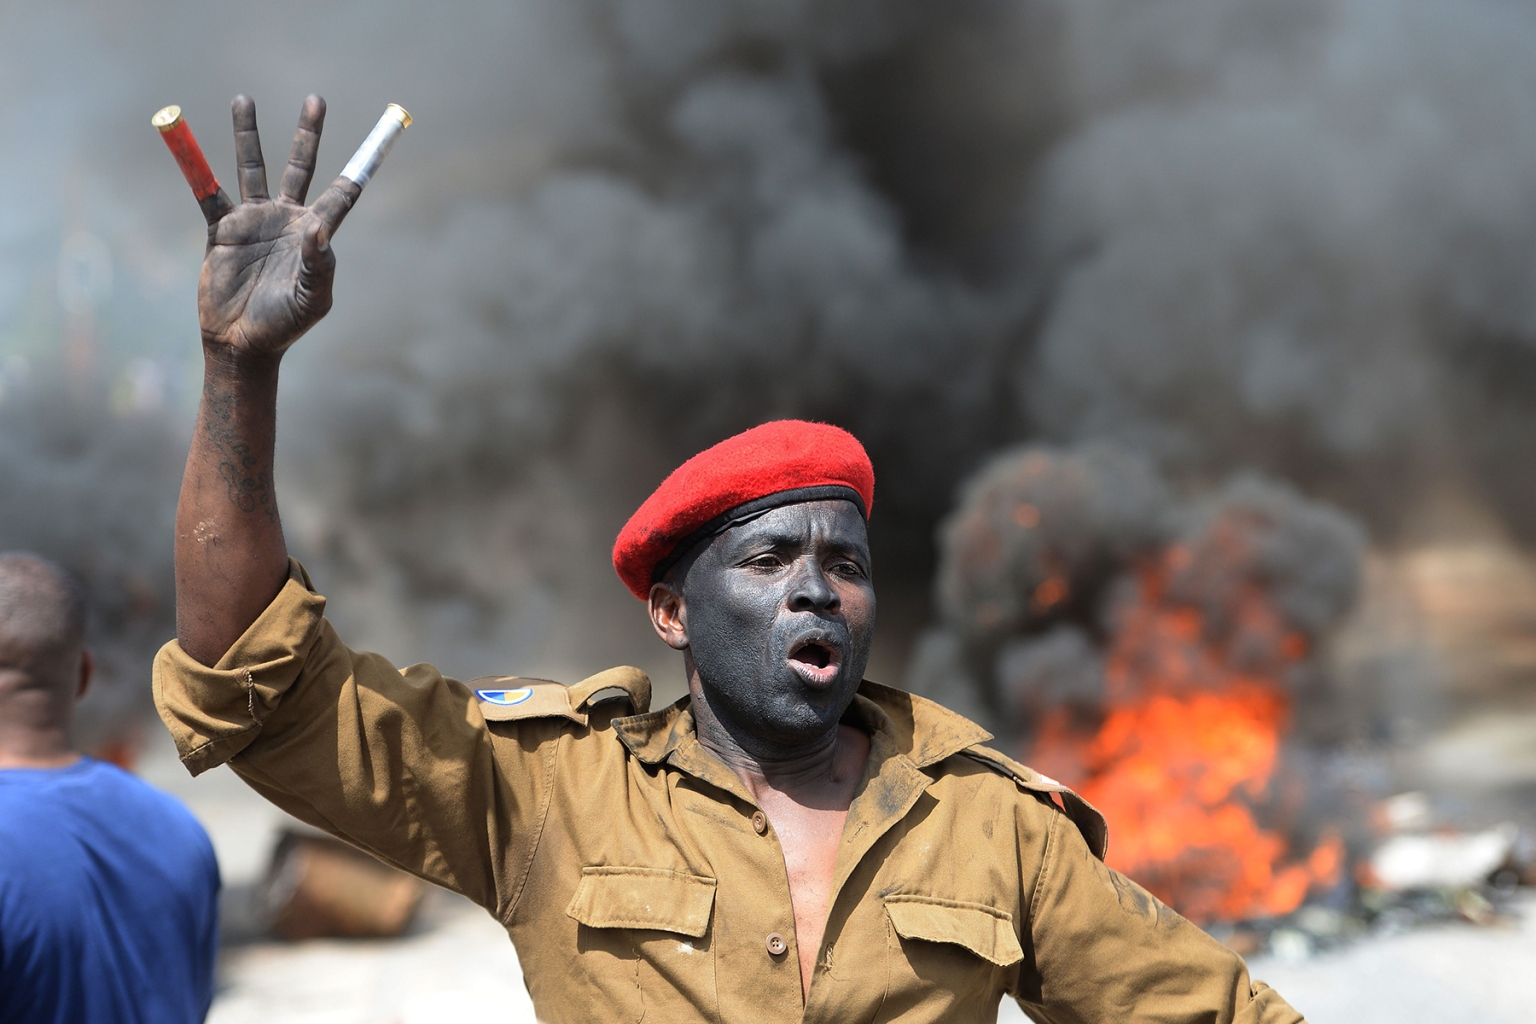 An Alexandra township resident gestures during clashes with the Johannesburg Metro Police in South Africa on April 3 during a shutdown of the township during protests against the lack basic necessities such as access to water, electricity, affordable housing, and public road maintenance. STRINGER/AFP/Getty Images